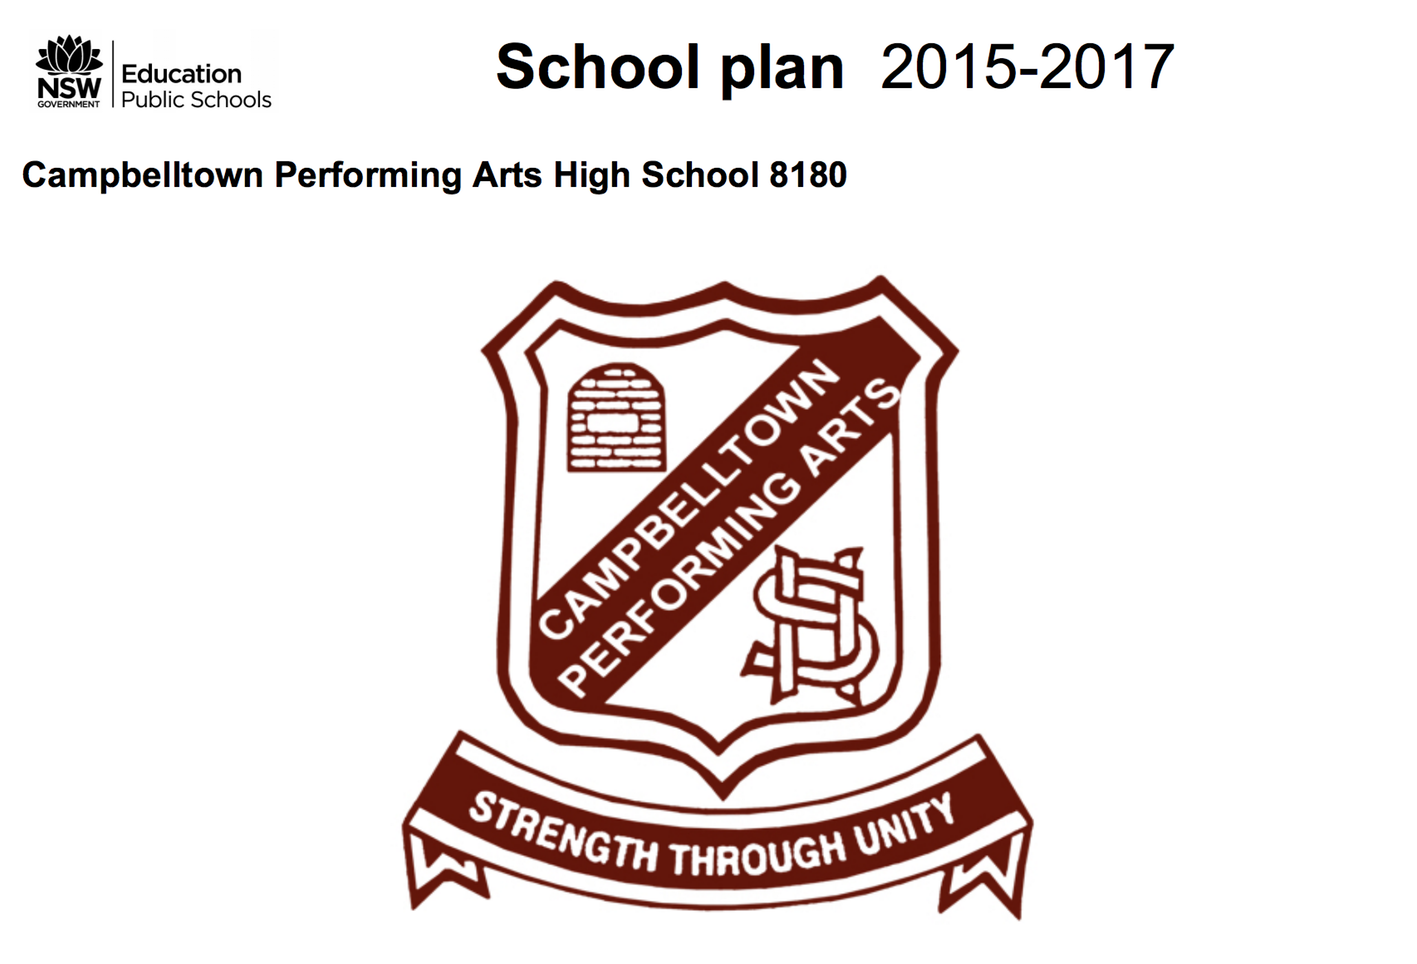 School Plan front cover